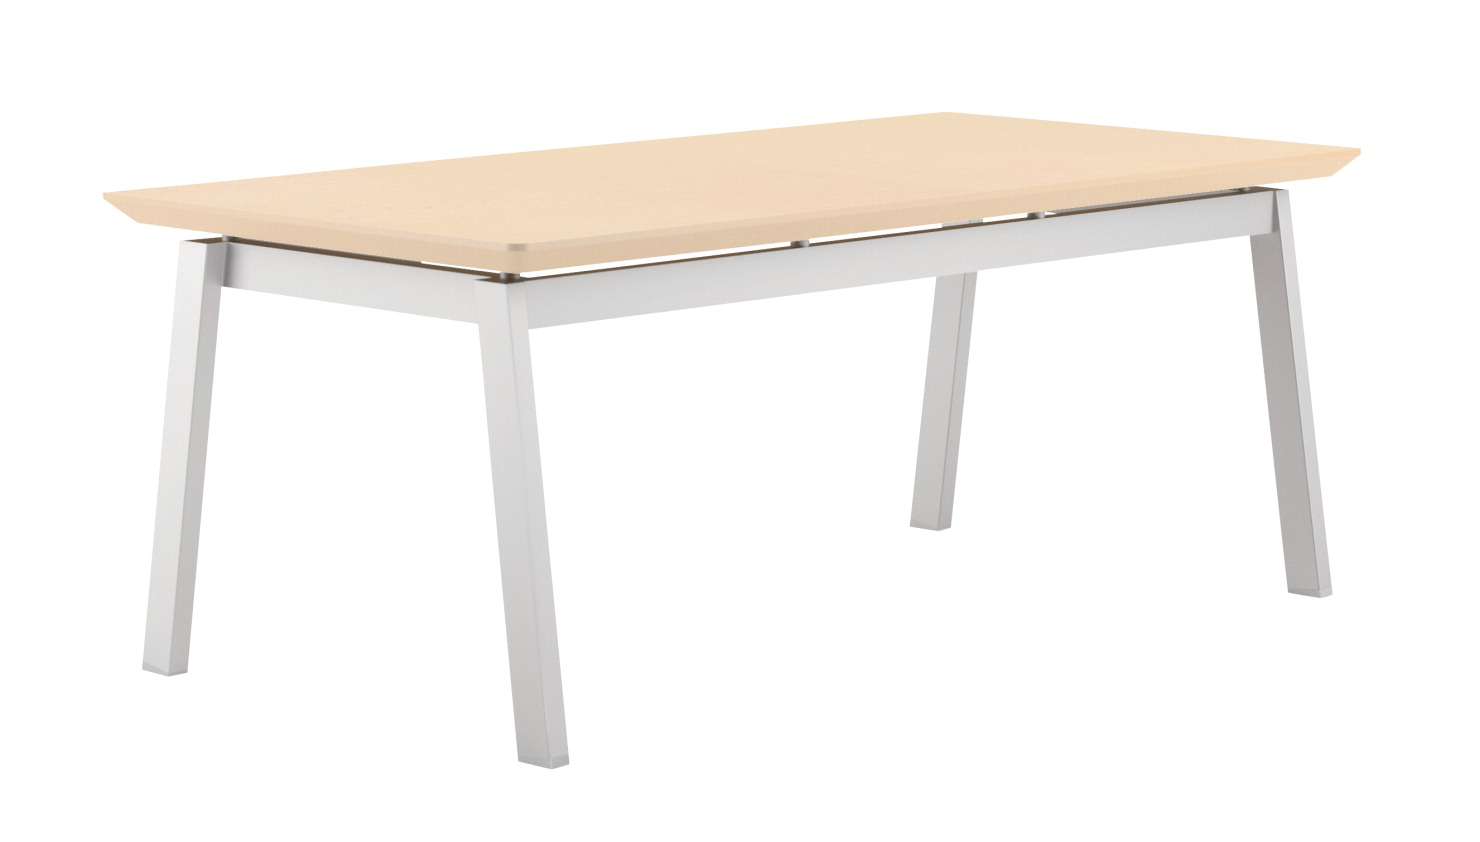 Lesro Newport Coffee Table With 4 Legs 40 X 20 X 16 Inches Various Options School Specialty